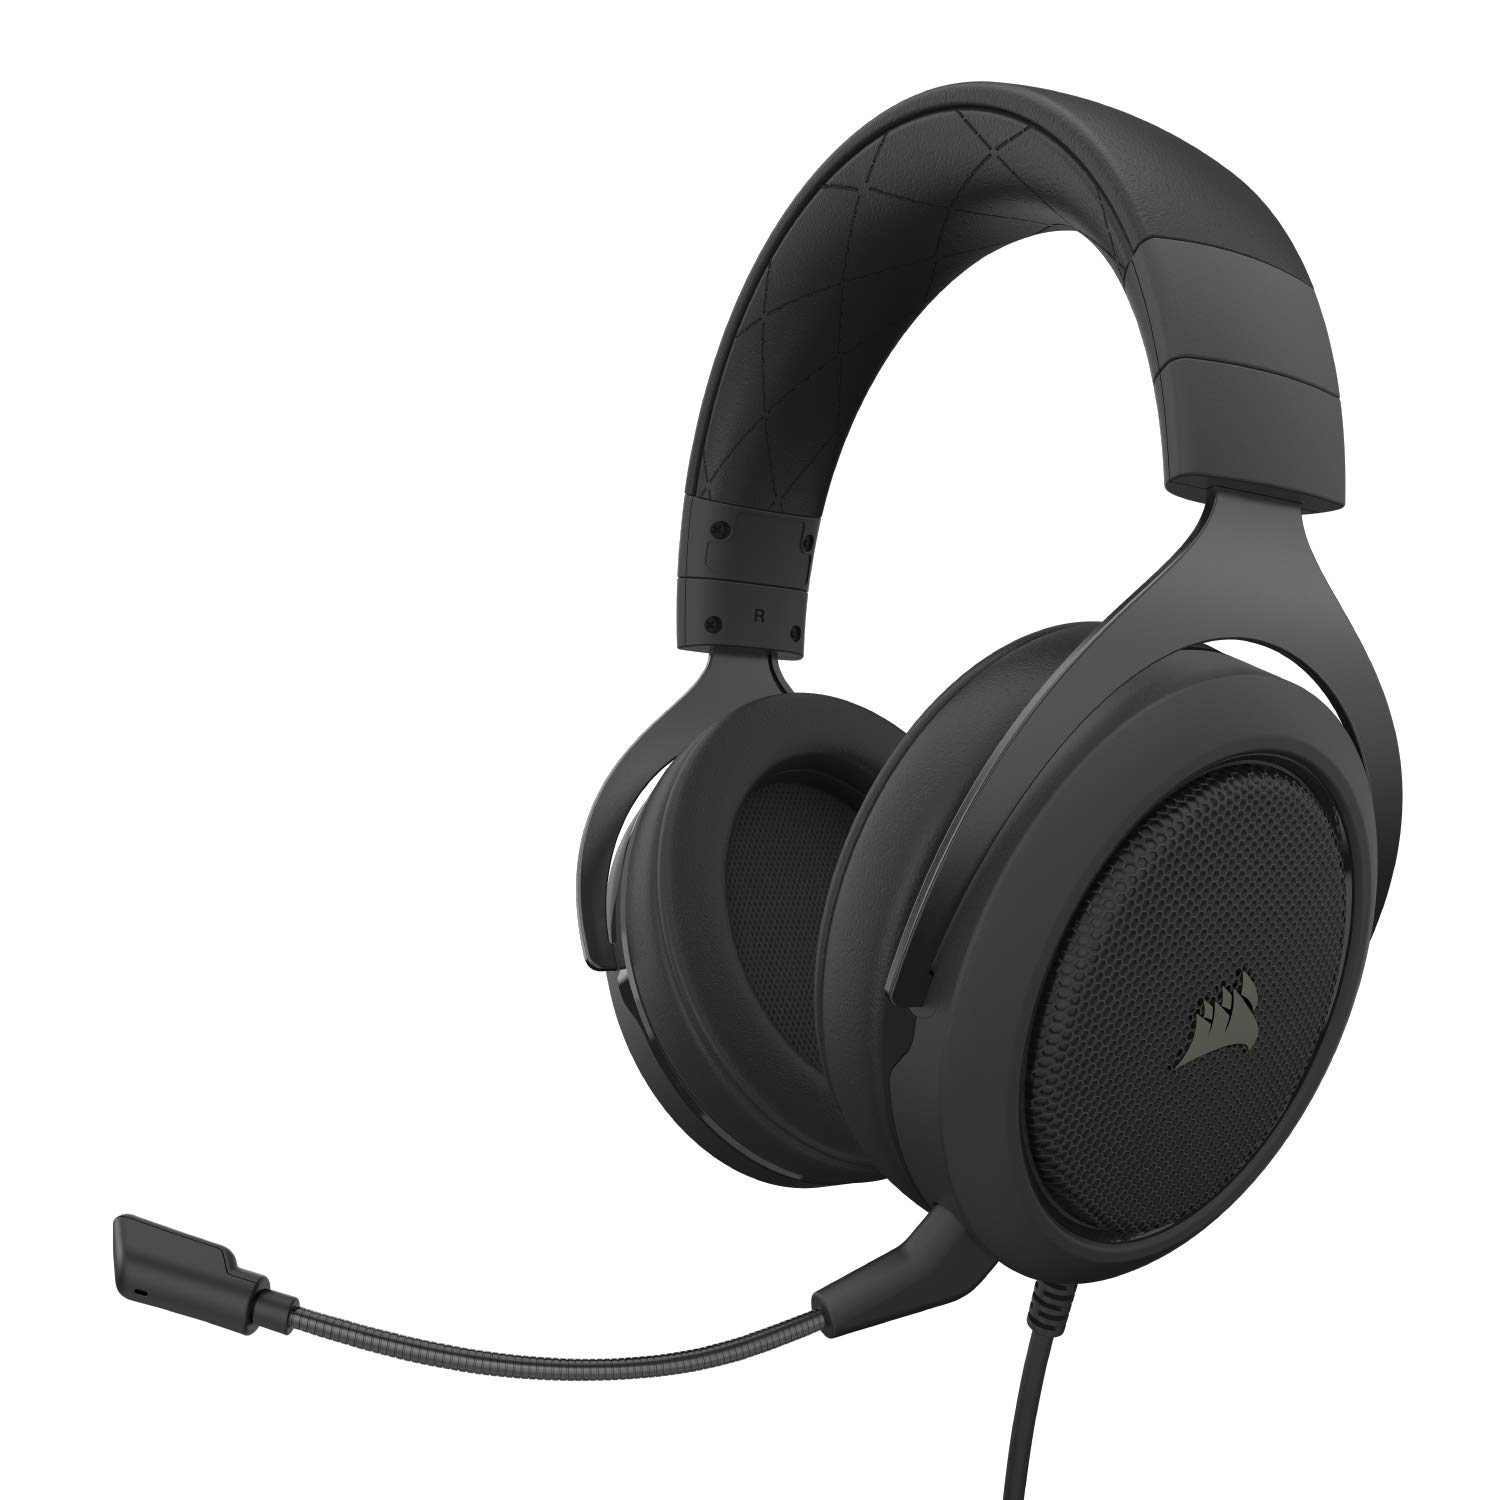 Auriculares Corsair HS50 Pro - Stereo Gaming Headset - Disco